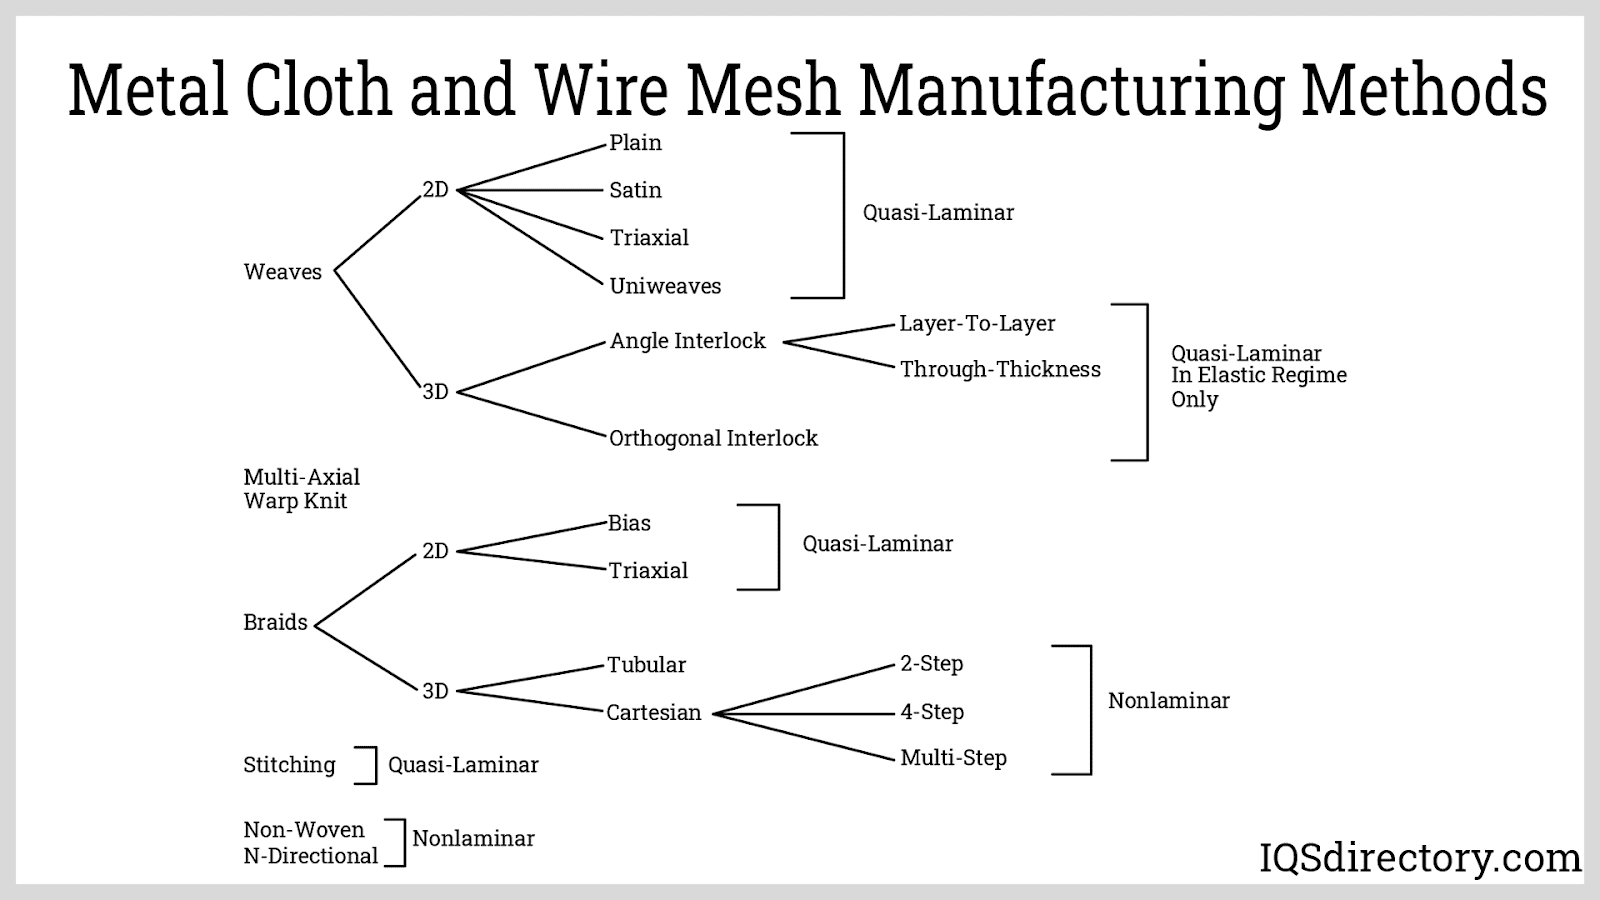 Metal Cloth and Wire Mesh Manufacturing Methods